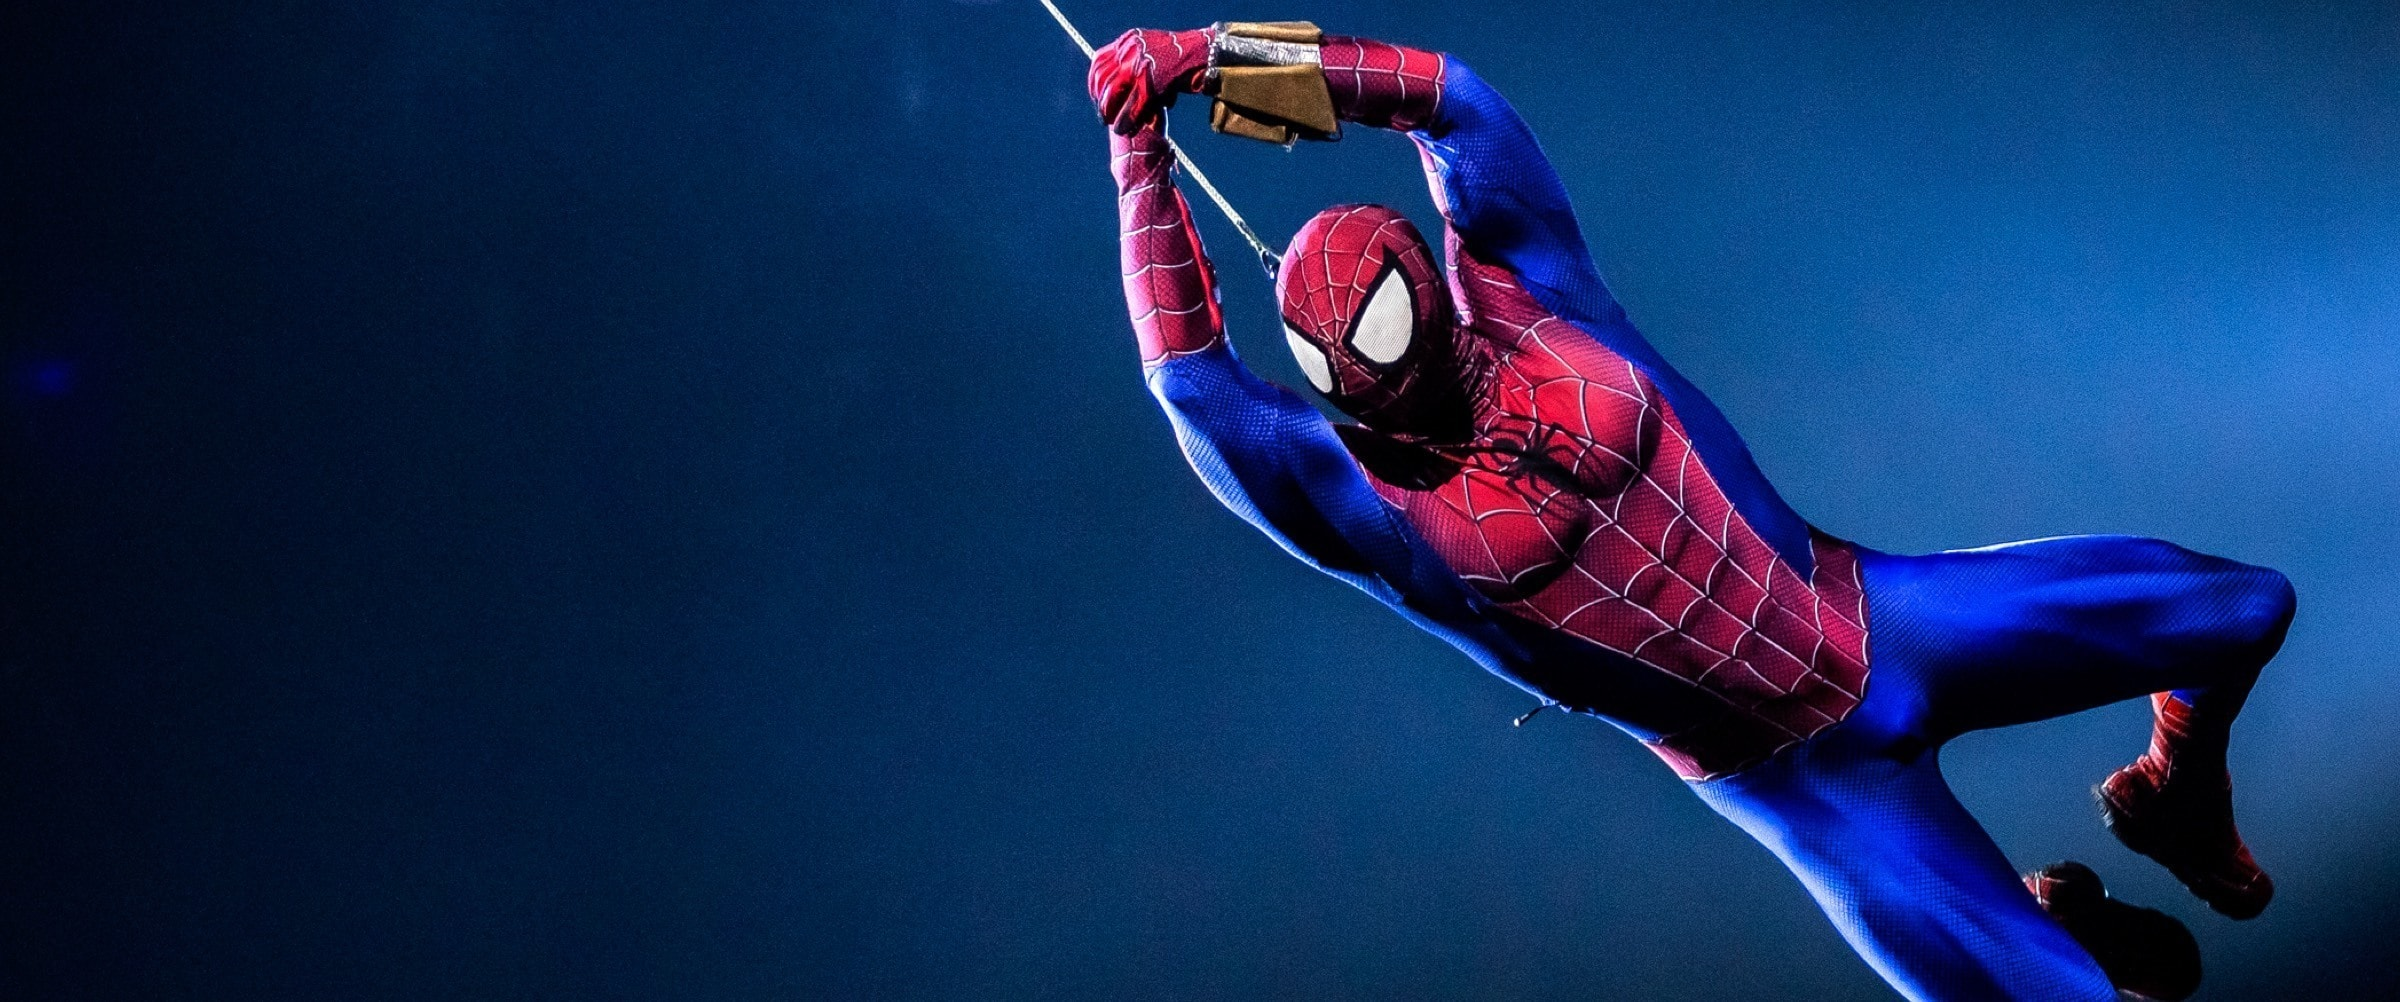 Marvel Universe Live | On tour in Australia March, April 2020